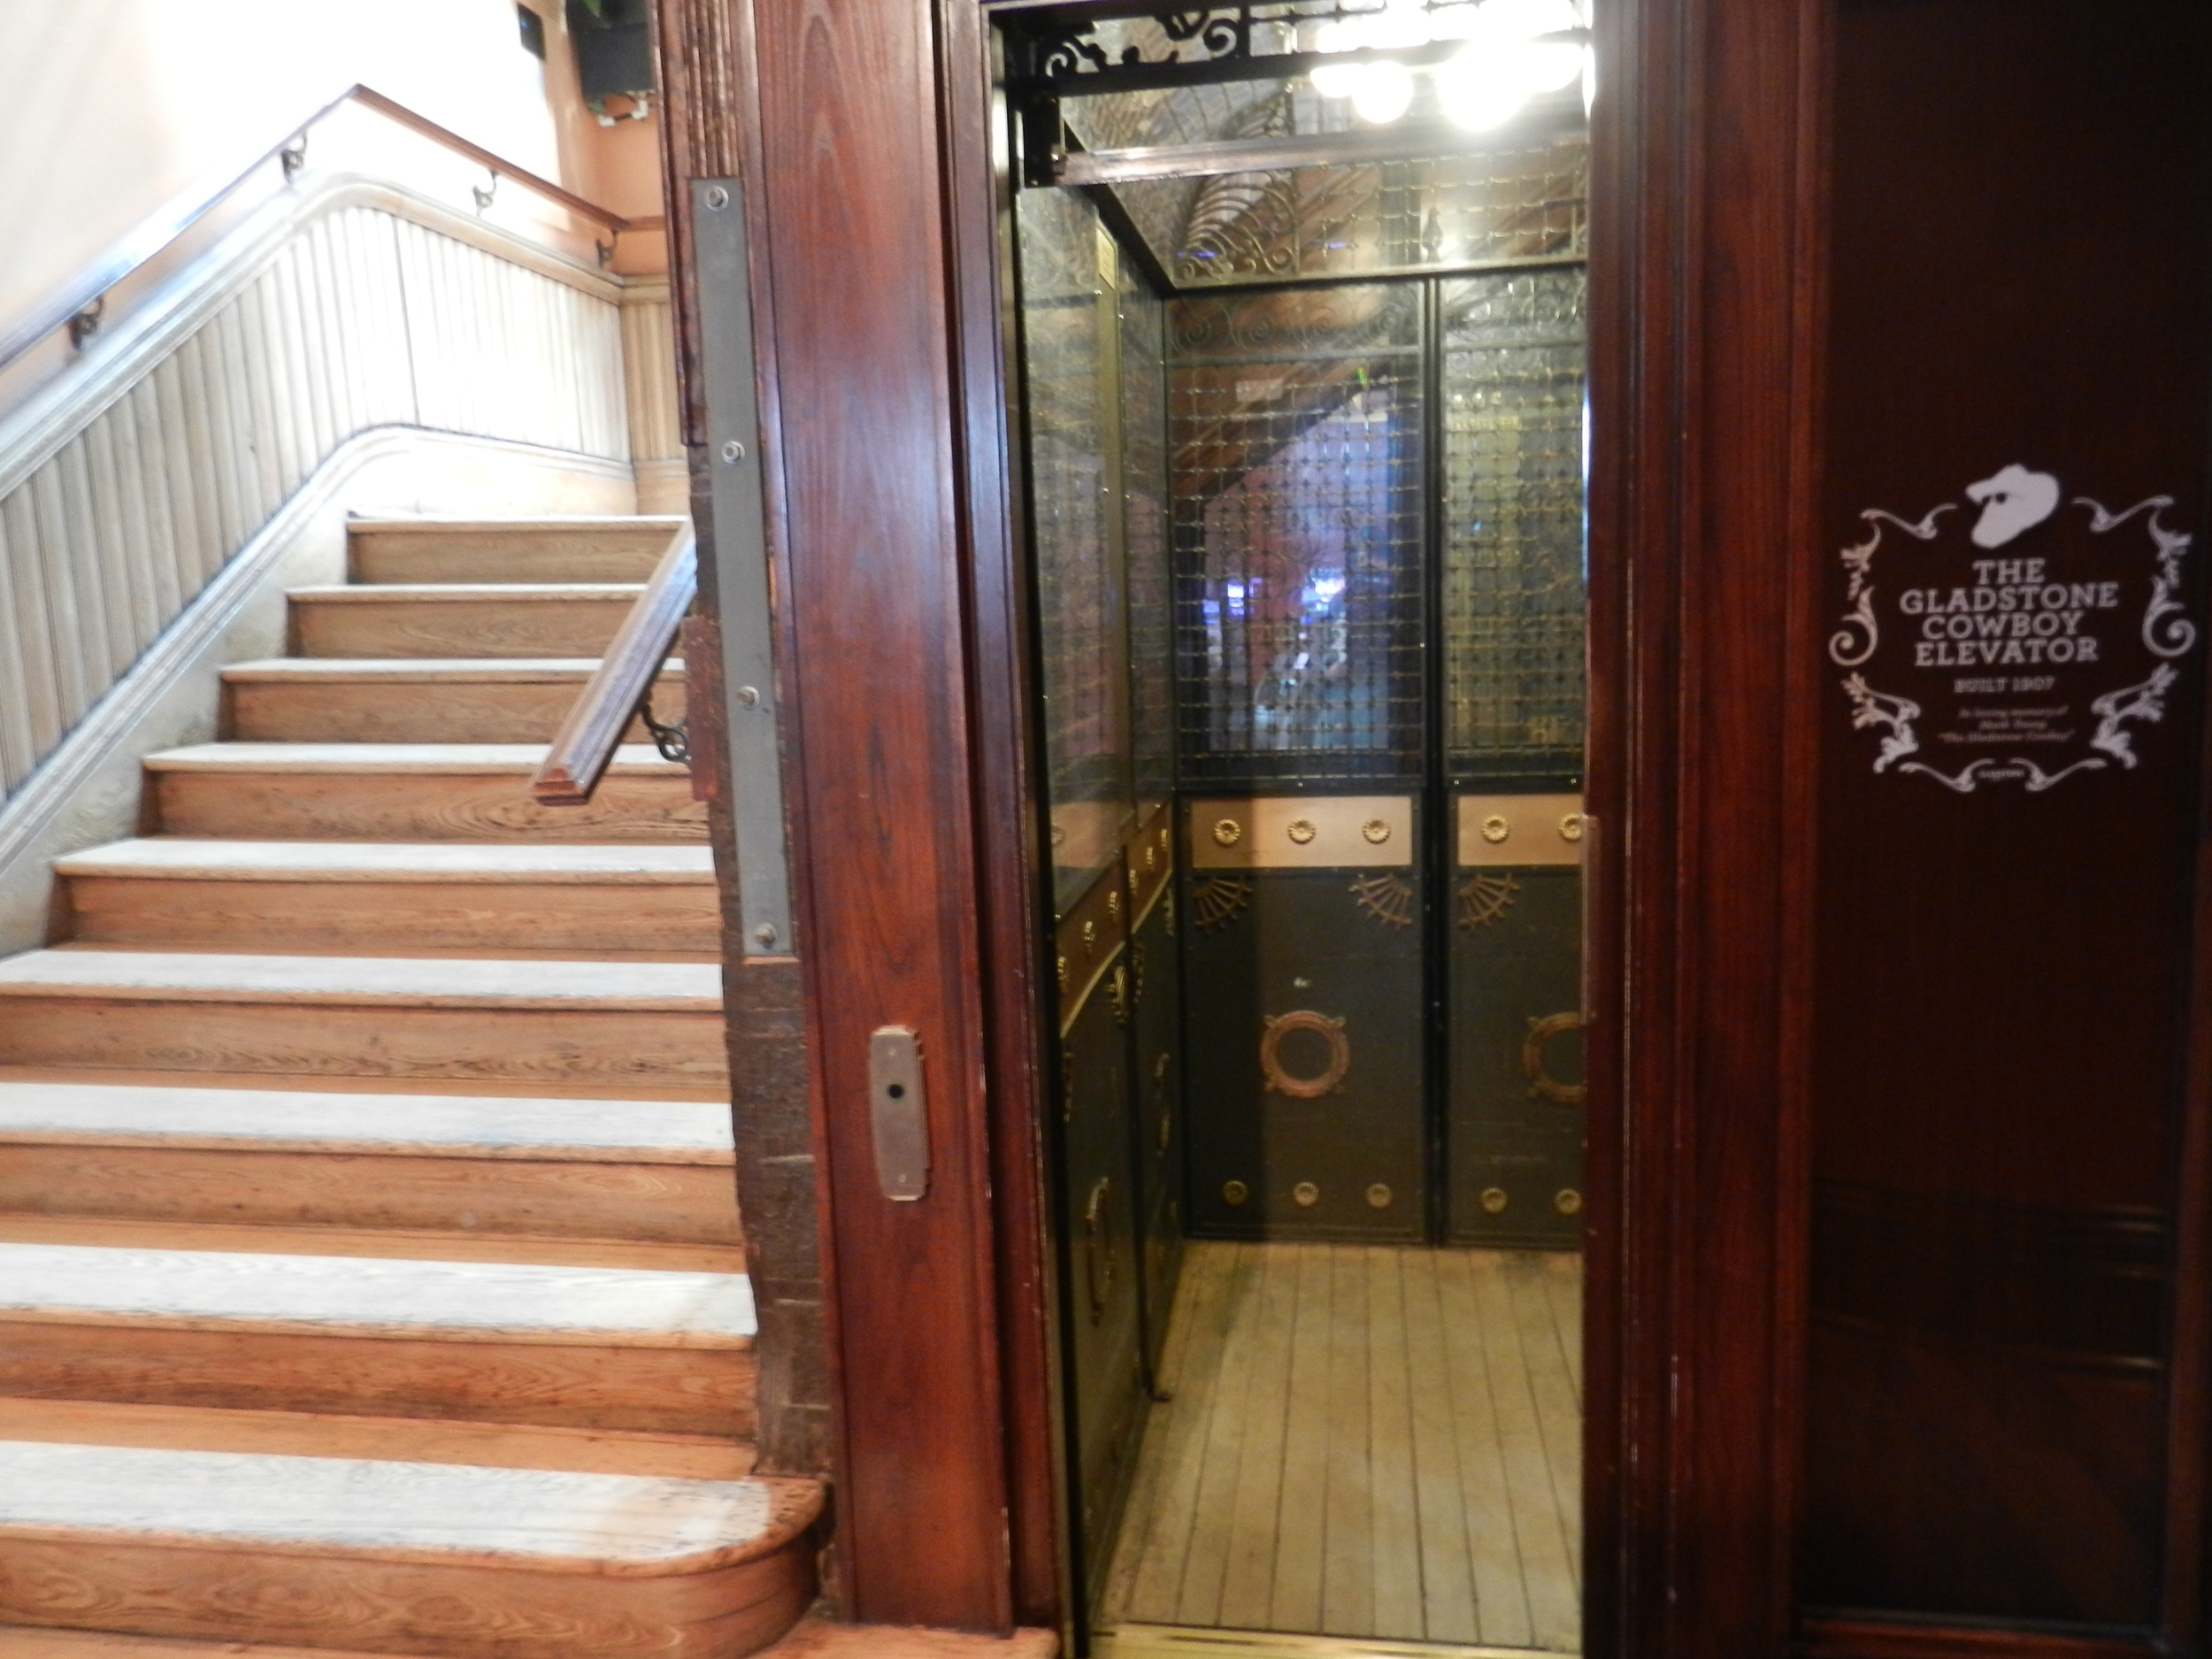 Picture of accessible elevator.